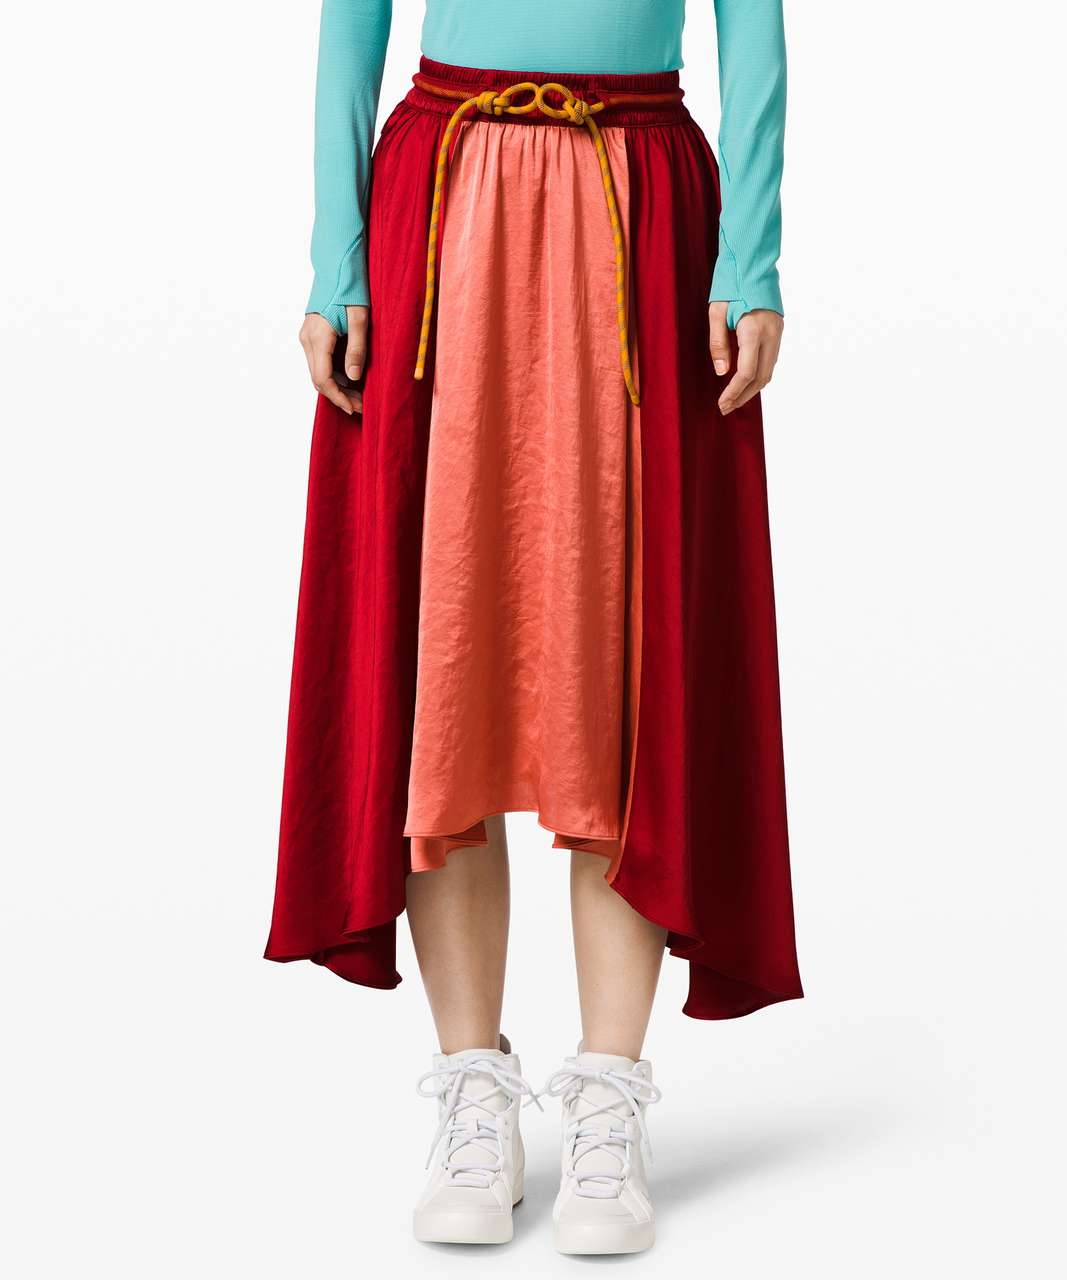 Lululemon Face Forward Skirt *lululemon x Roksanda - Caliente / Rustic Coral / Fools Gold